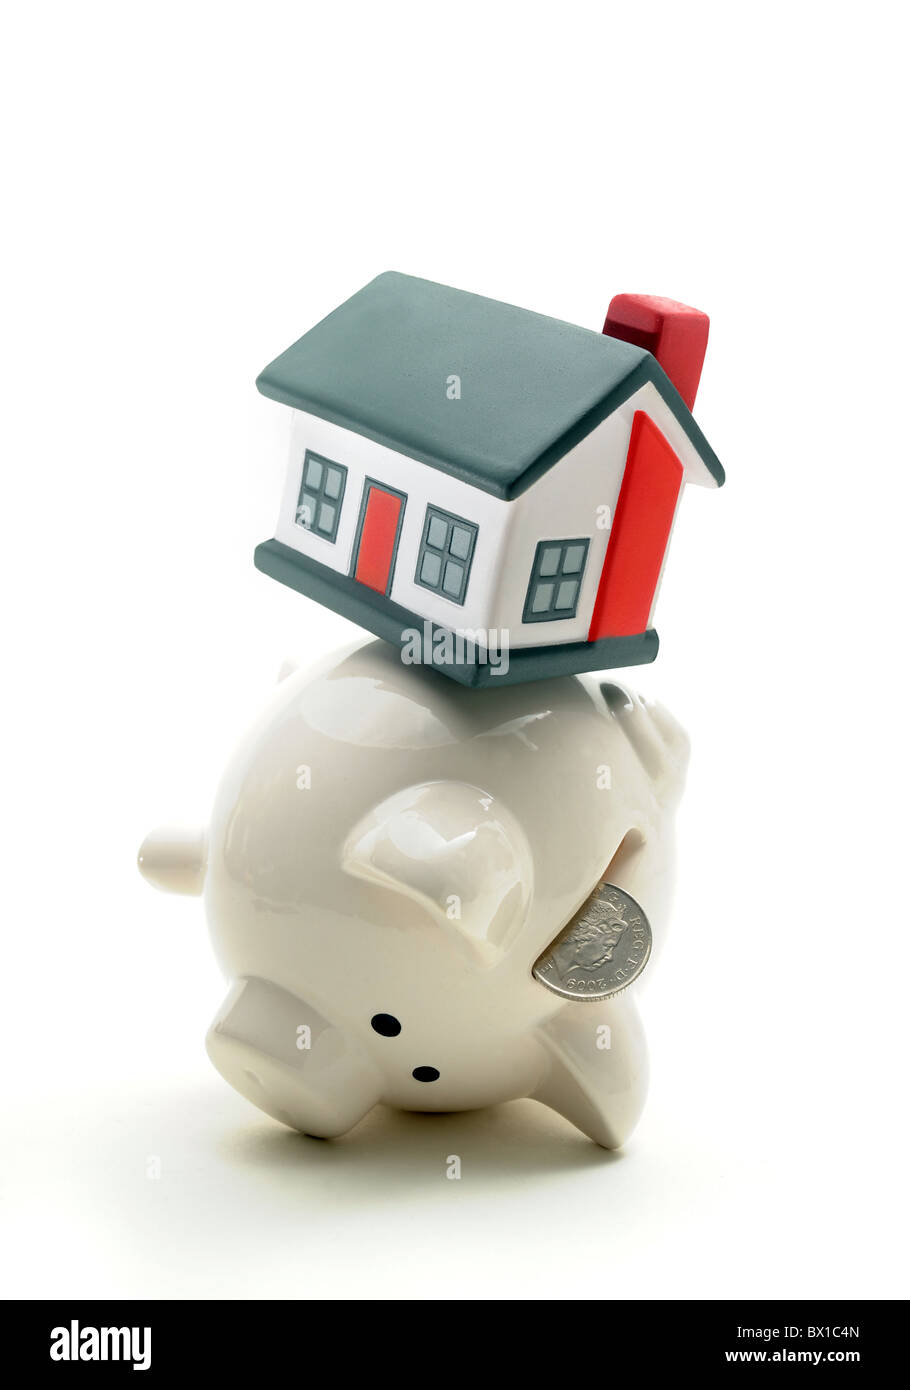 PIGGY BANK BALANCING HOUSE ON BACK RE HOUSEHOLD BUDGETS SAVINGS HOME OWNERSHIP CASH WAGES MORTGAGES RENTS ETC UK Stock Photo